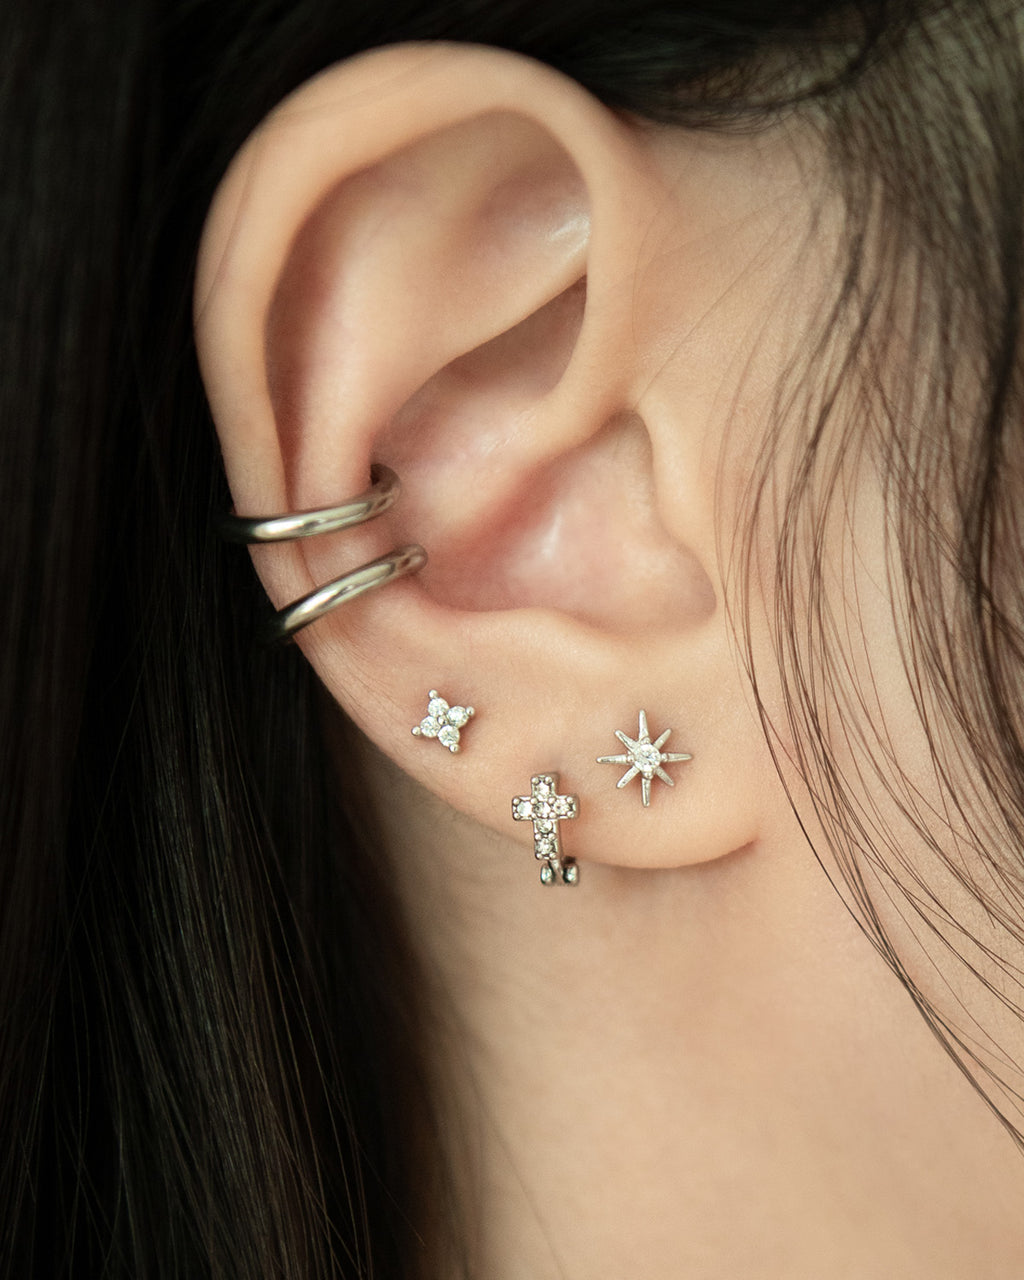 silver tiny stud earrings and petite huggie hoops by The Hexad Jewelry